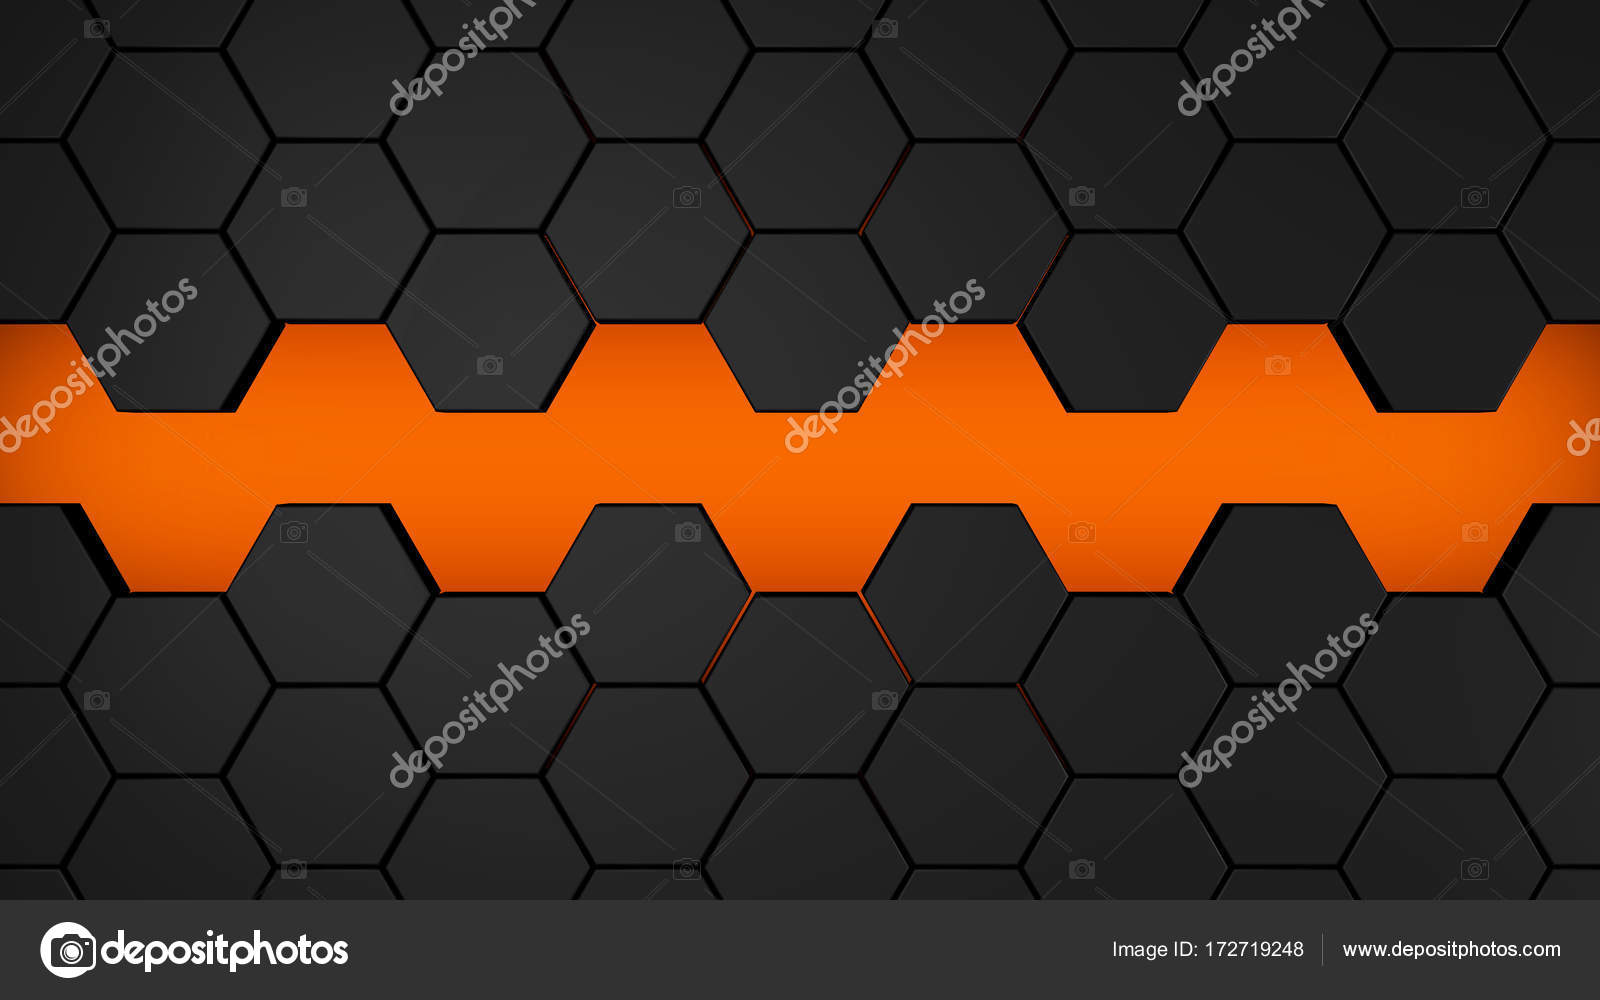 Black Background Orange Hexagon Pattern Abstract Design Technology Modern Texture Wallpaper Shape Digital Network Tech Illustration Surface